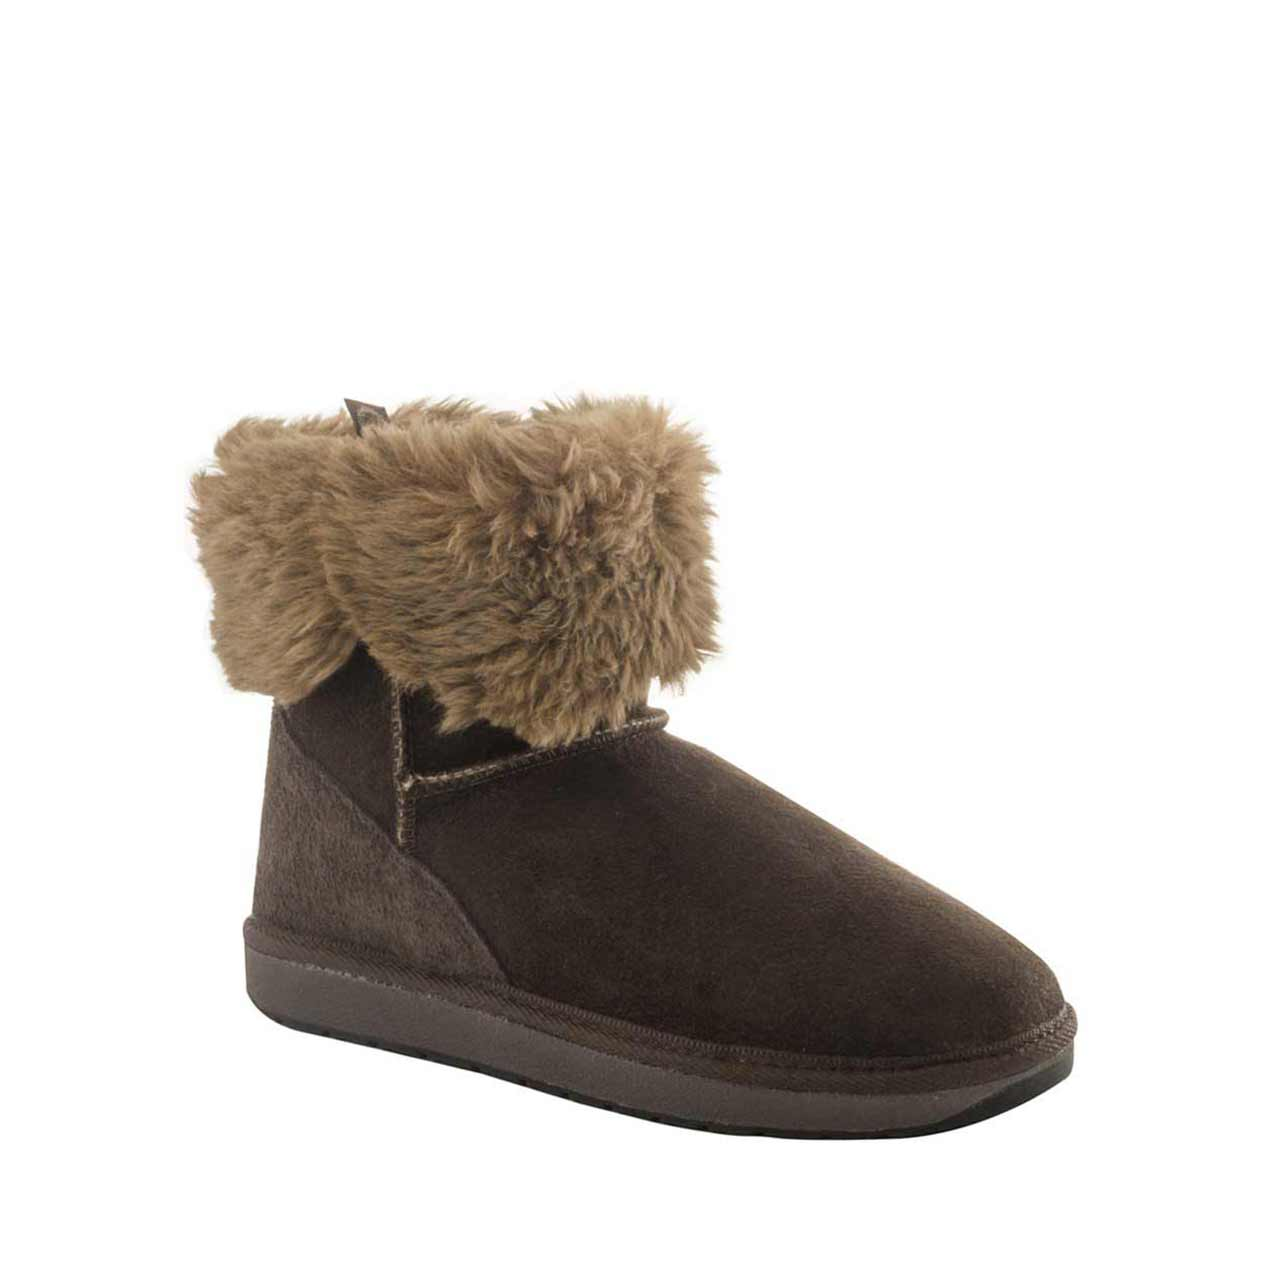 Mini Roo Boots | The One and Only | Ugg Australia®